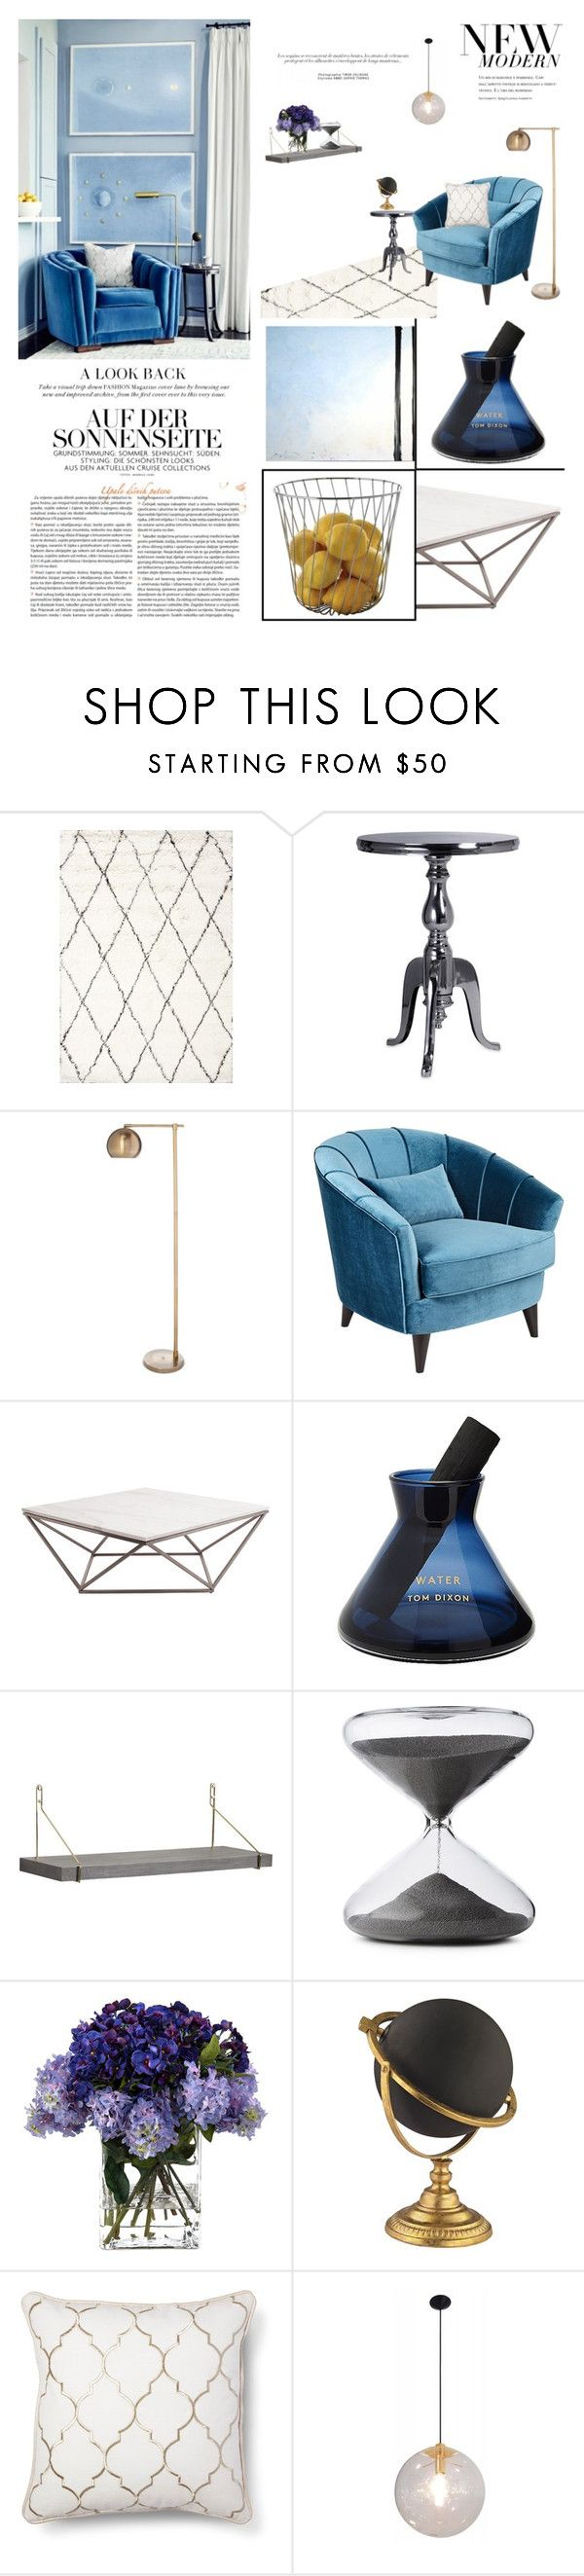 """""""OCEANIC"""" by ironono ❤ liked on Polyvore featuring interior, interiors, interior design, home, home decor, interior decorating, nuLOOM, Dot & Bo, Threshold and Universal Lighting and Decor"""